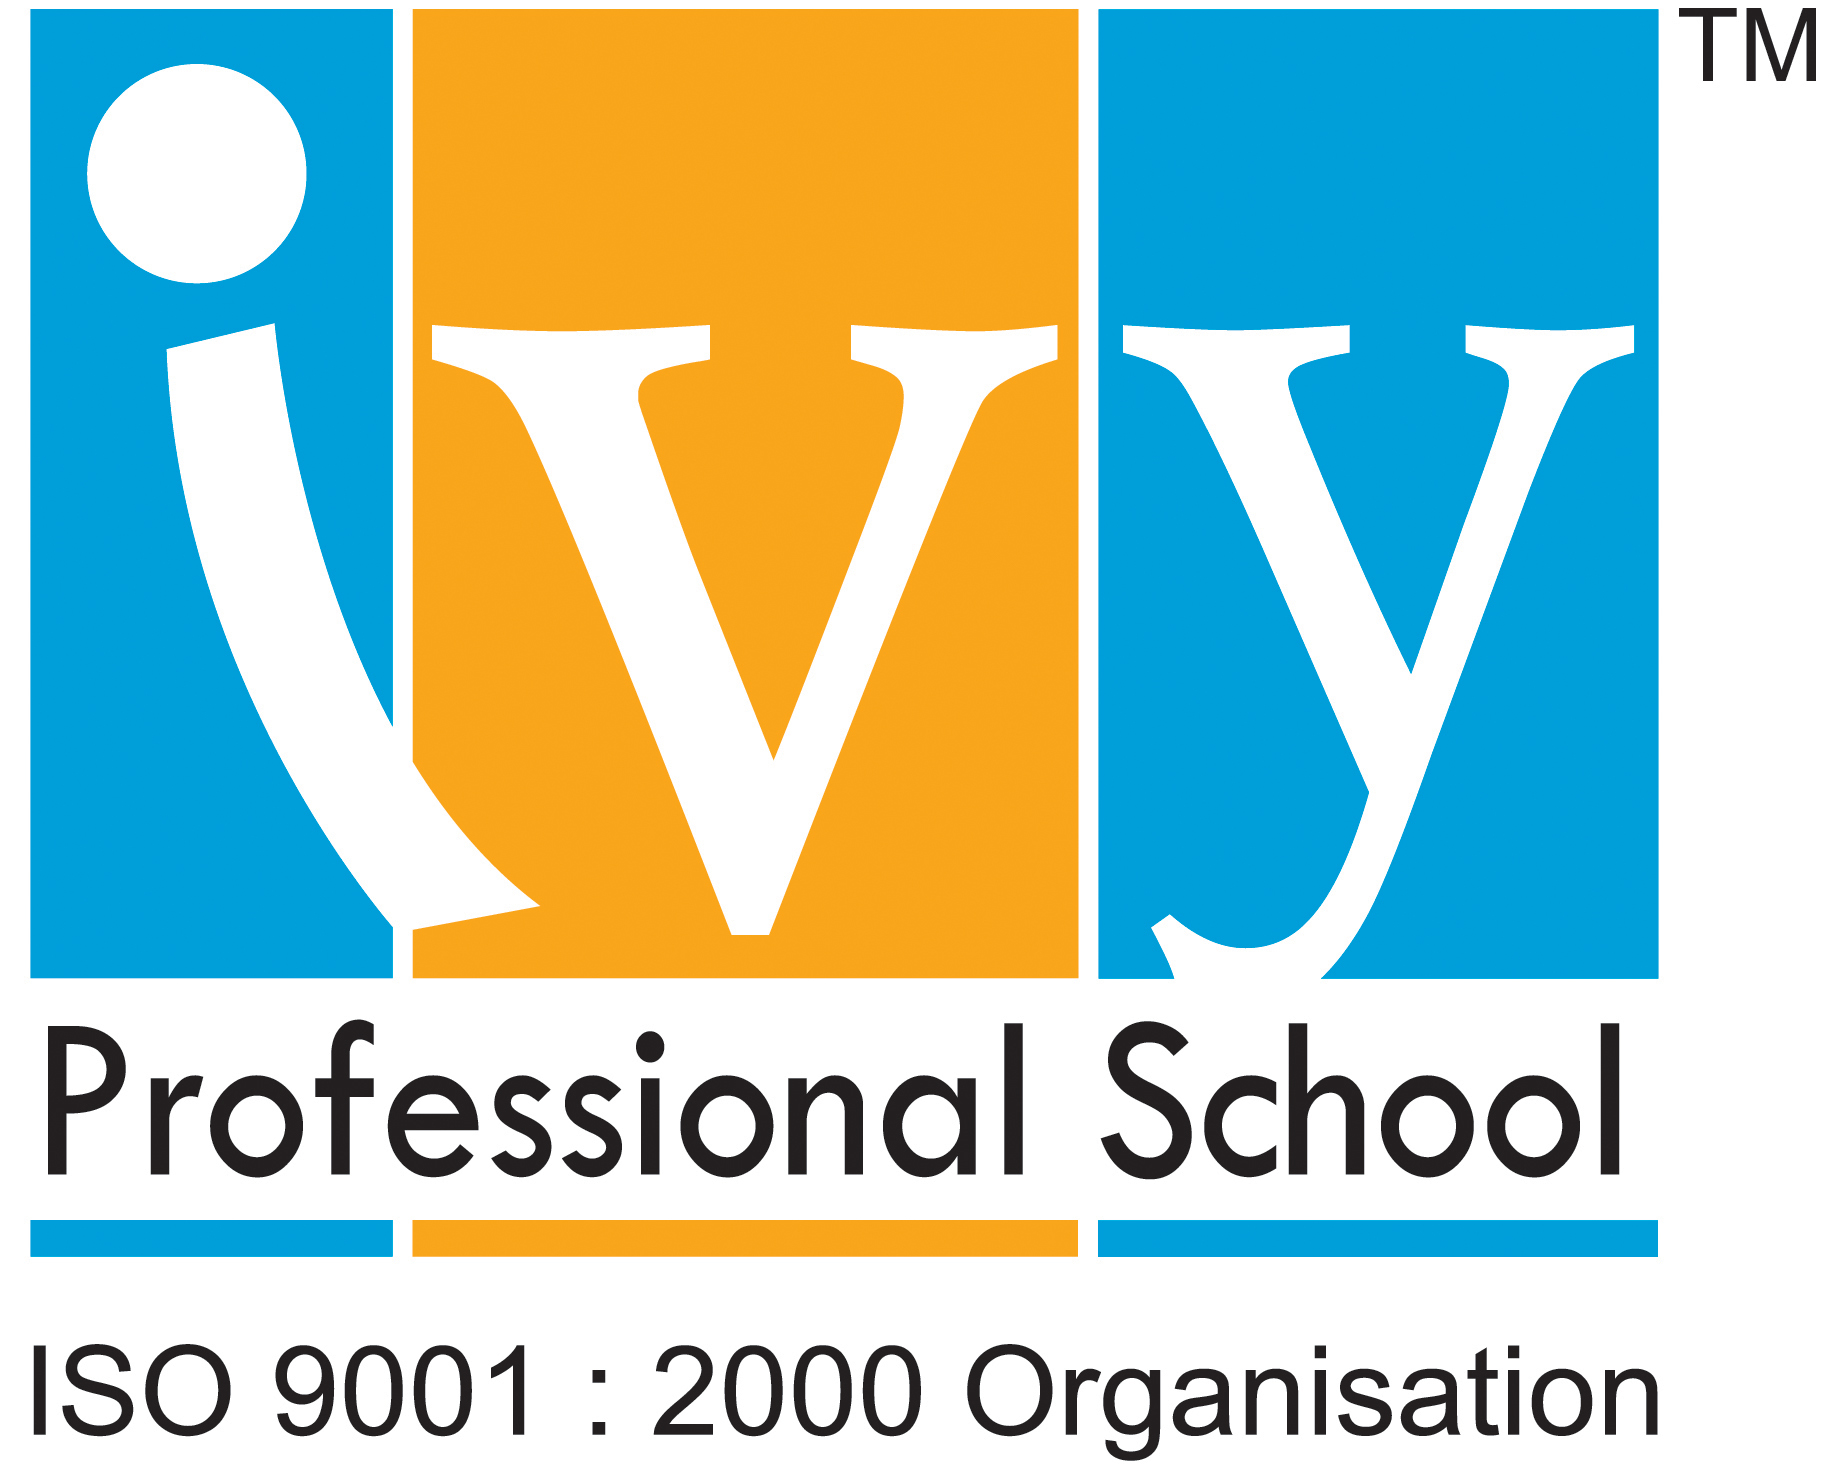 Ivy Professional School